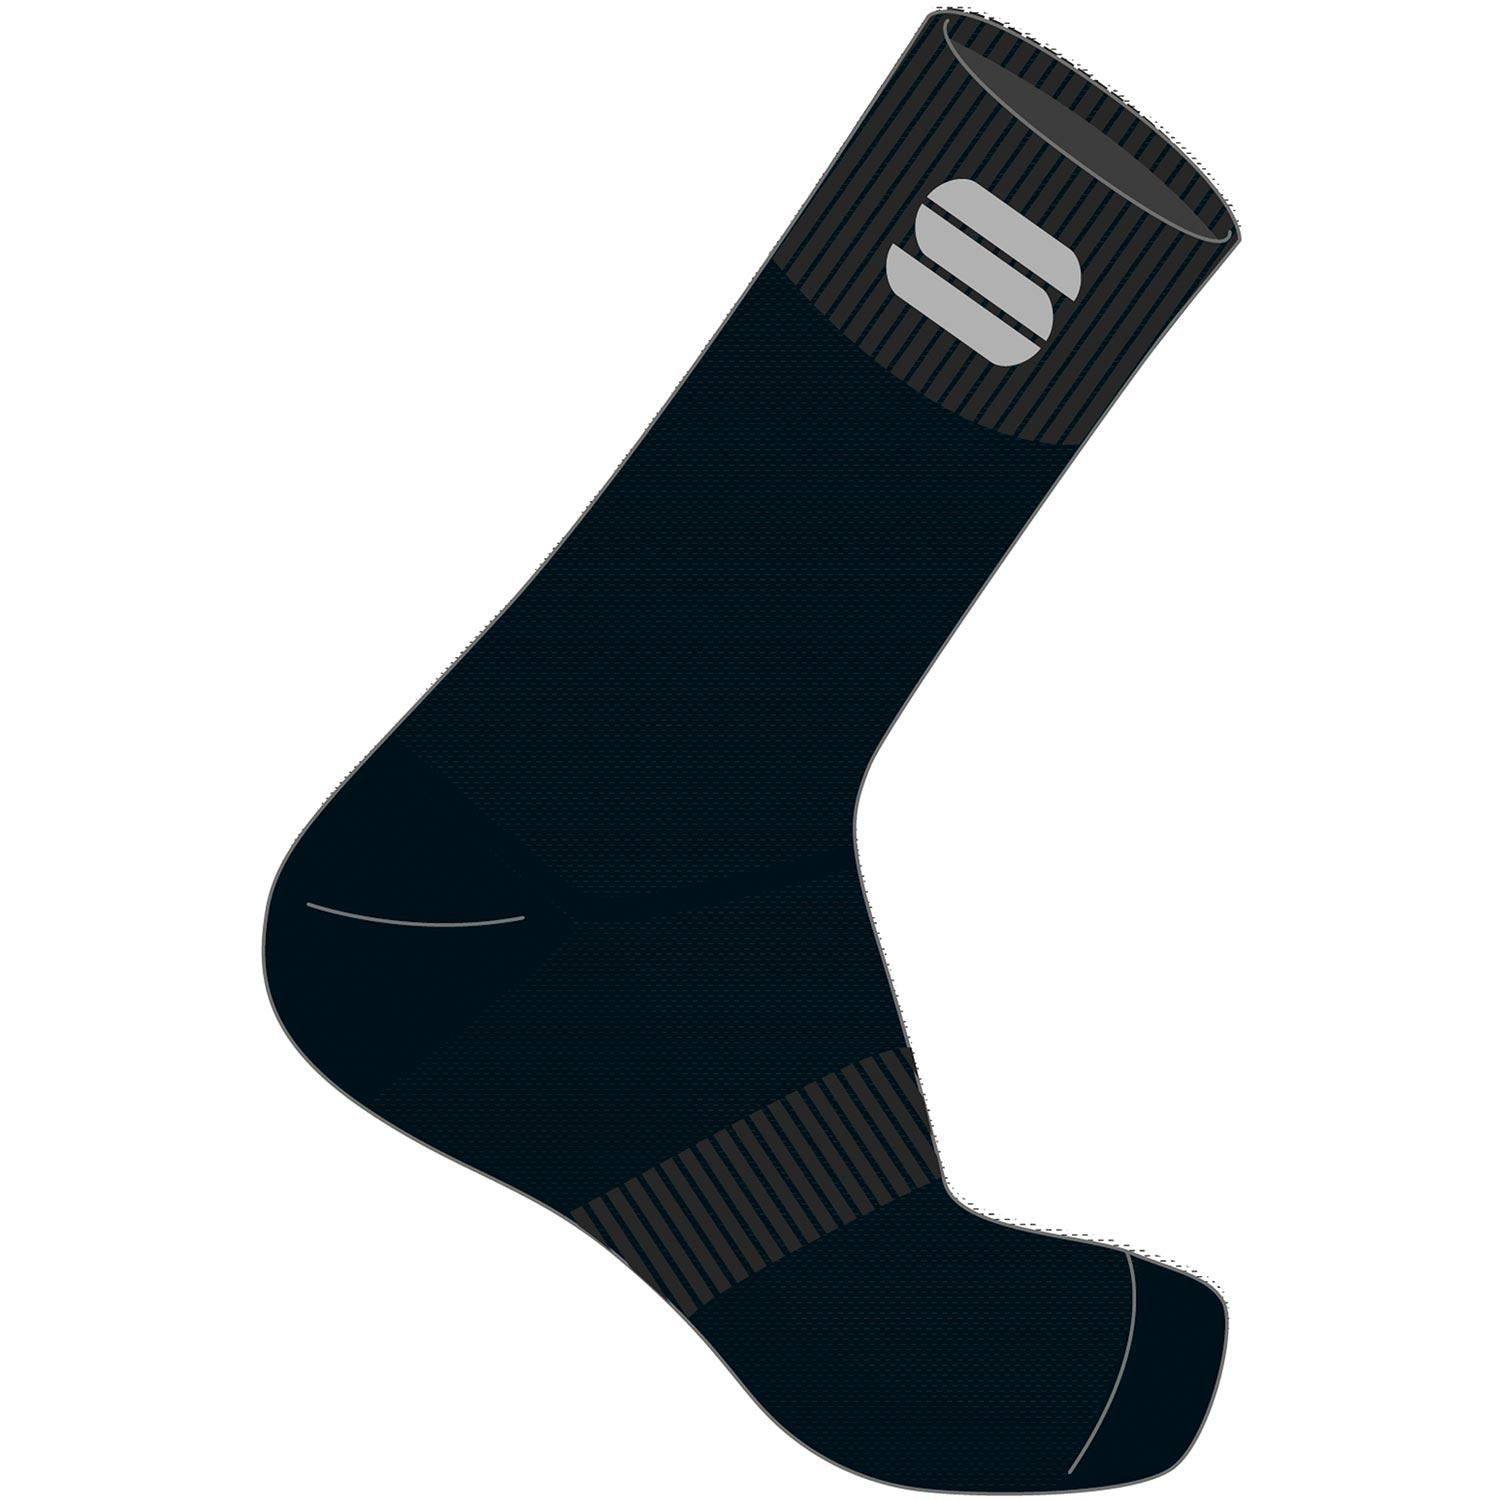 Sportful-Sportful Matchy Socks-Black-S-SF2107600212-saddleback-elite-performance-cycling